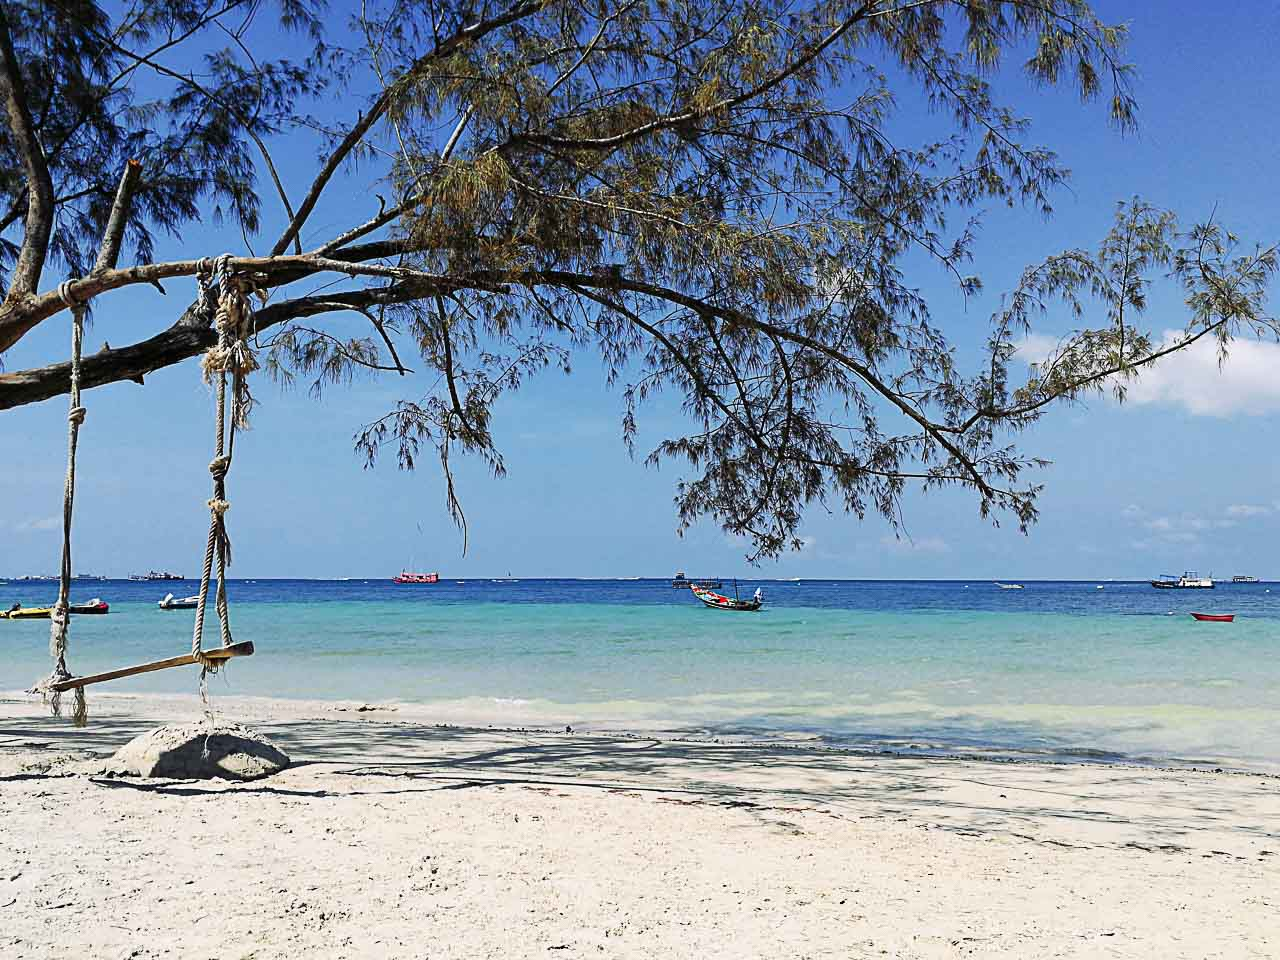 There are many things to do in Koh Tao, starting with beuatiful beaches that are perfect for diving.